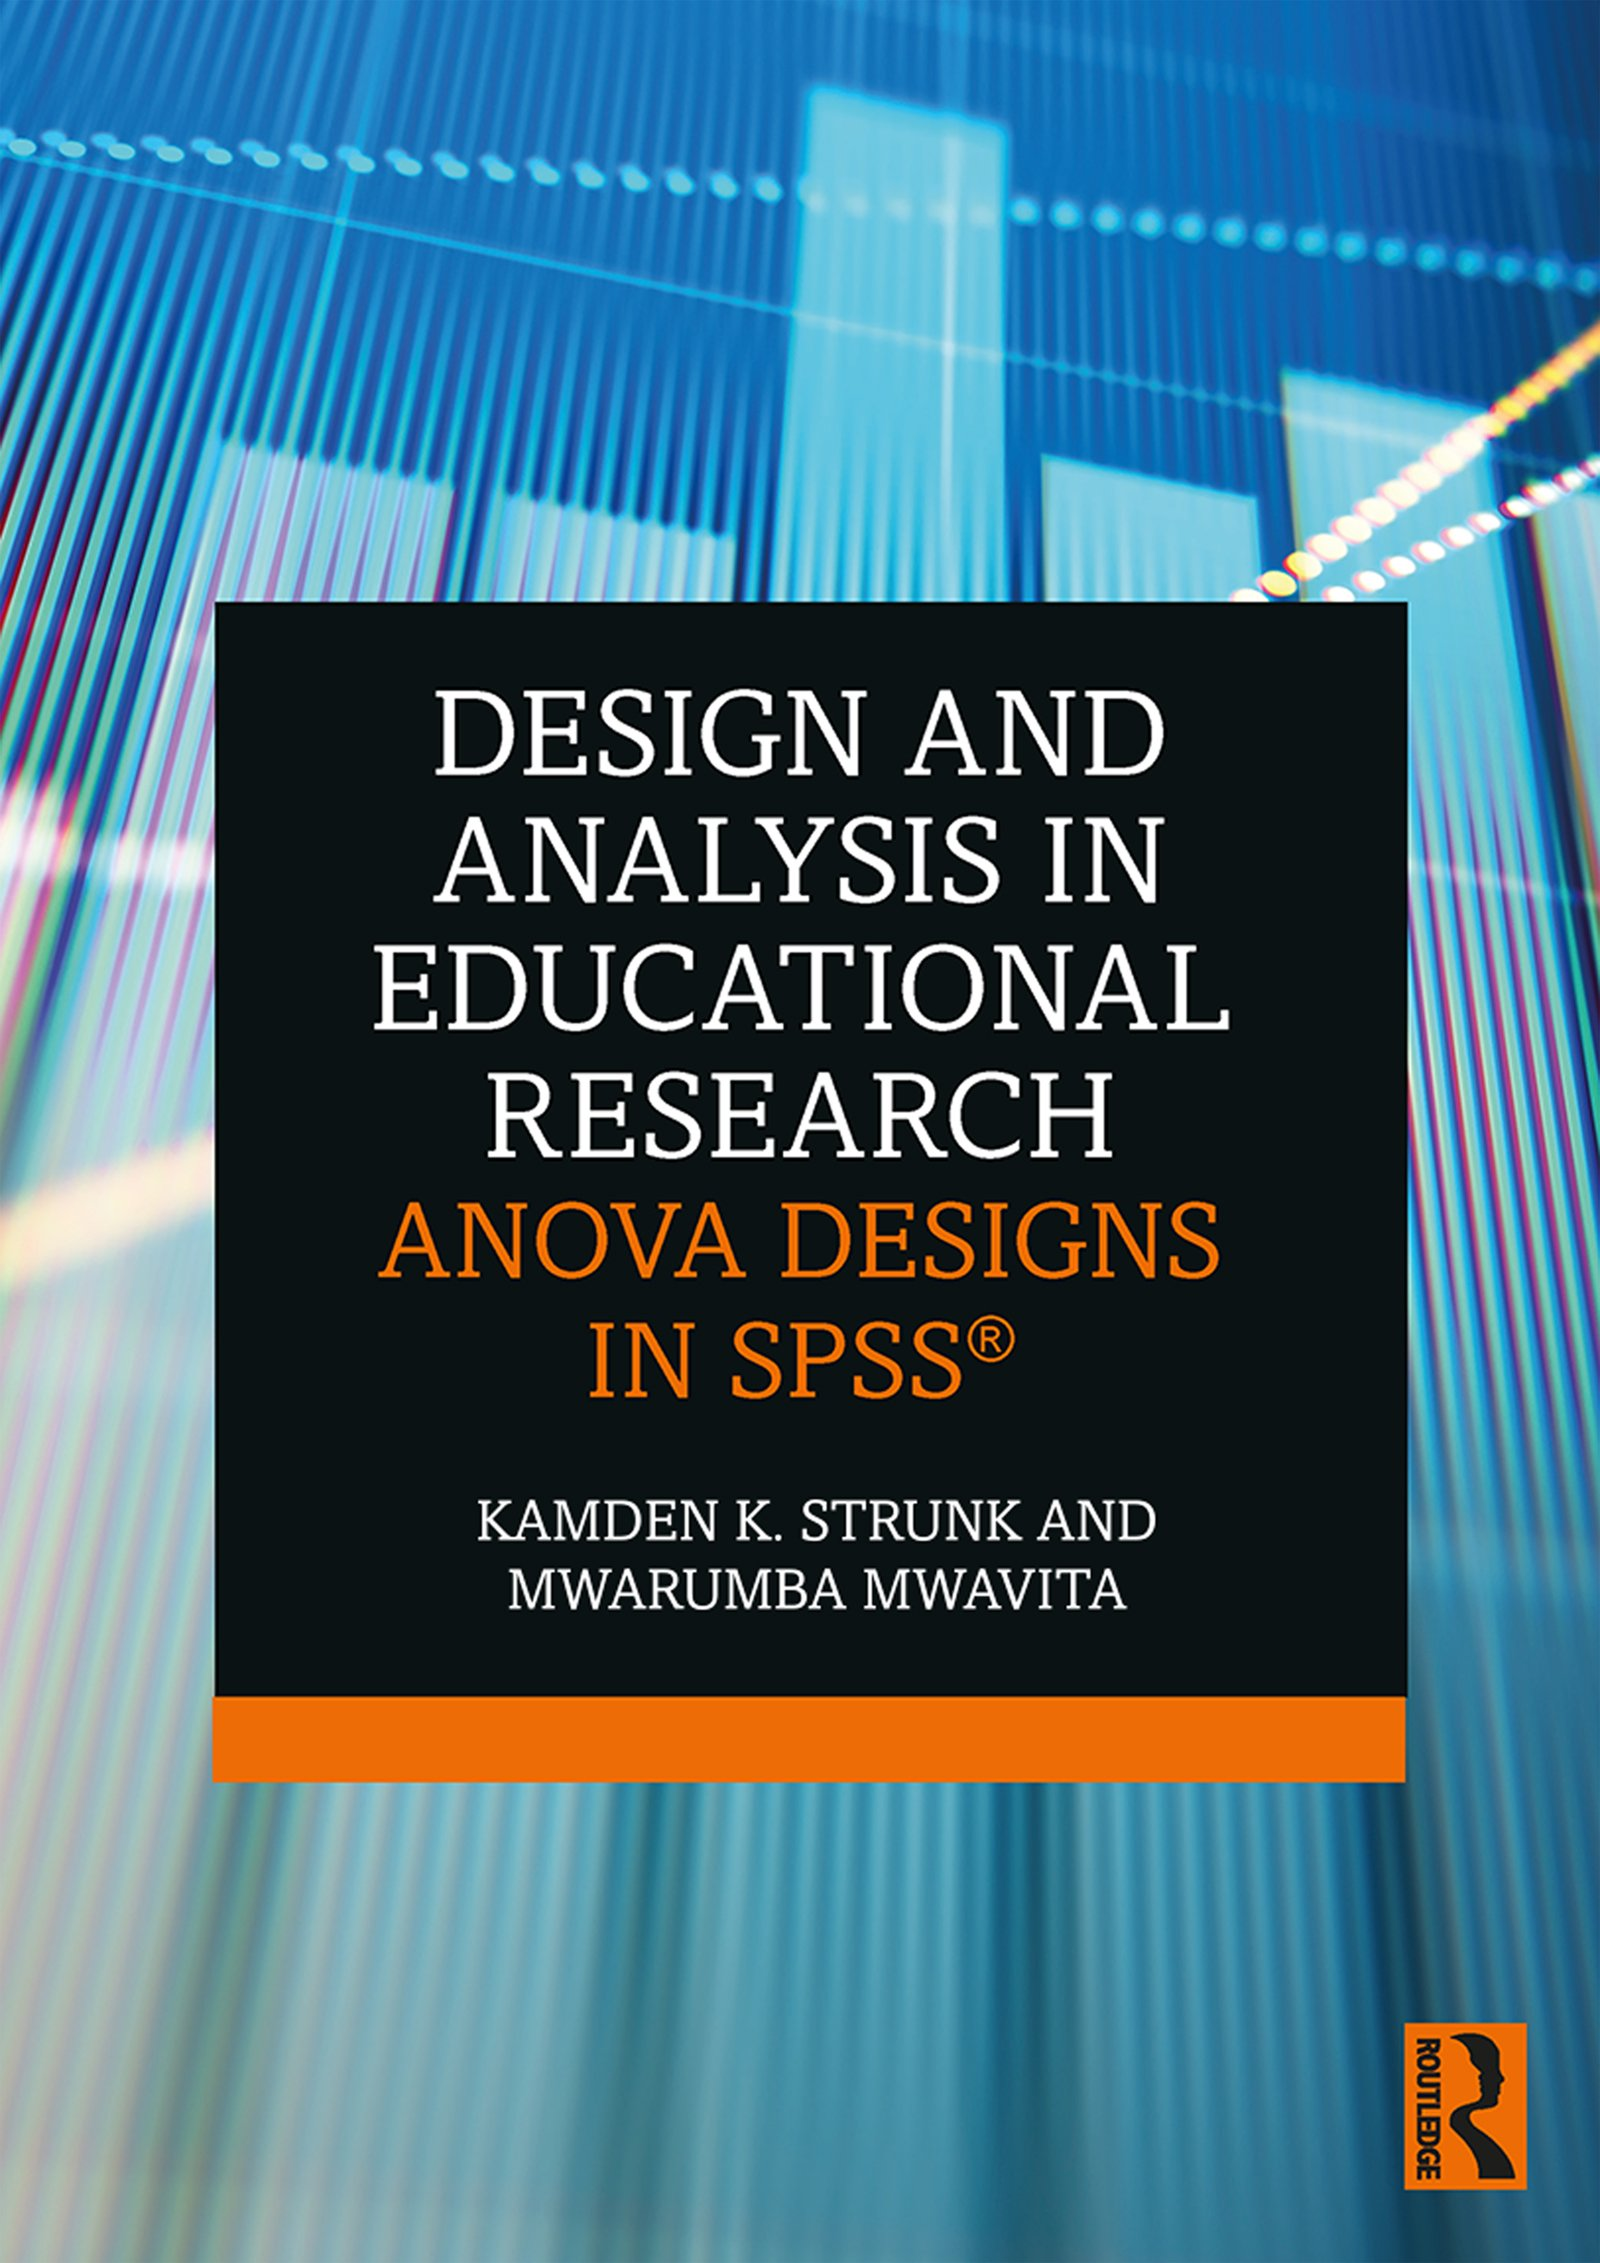 Design and Analysis in Educational Research: ANOVA Designs in SPSS® book cover